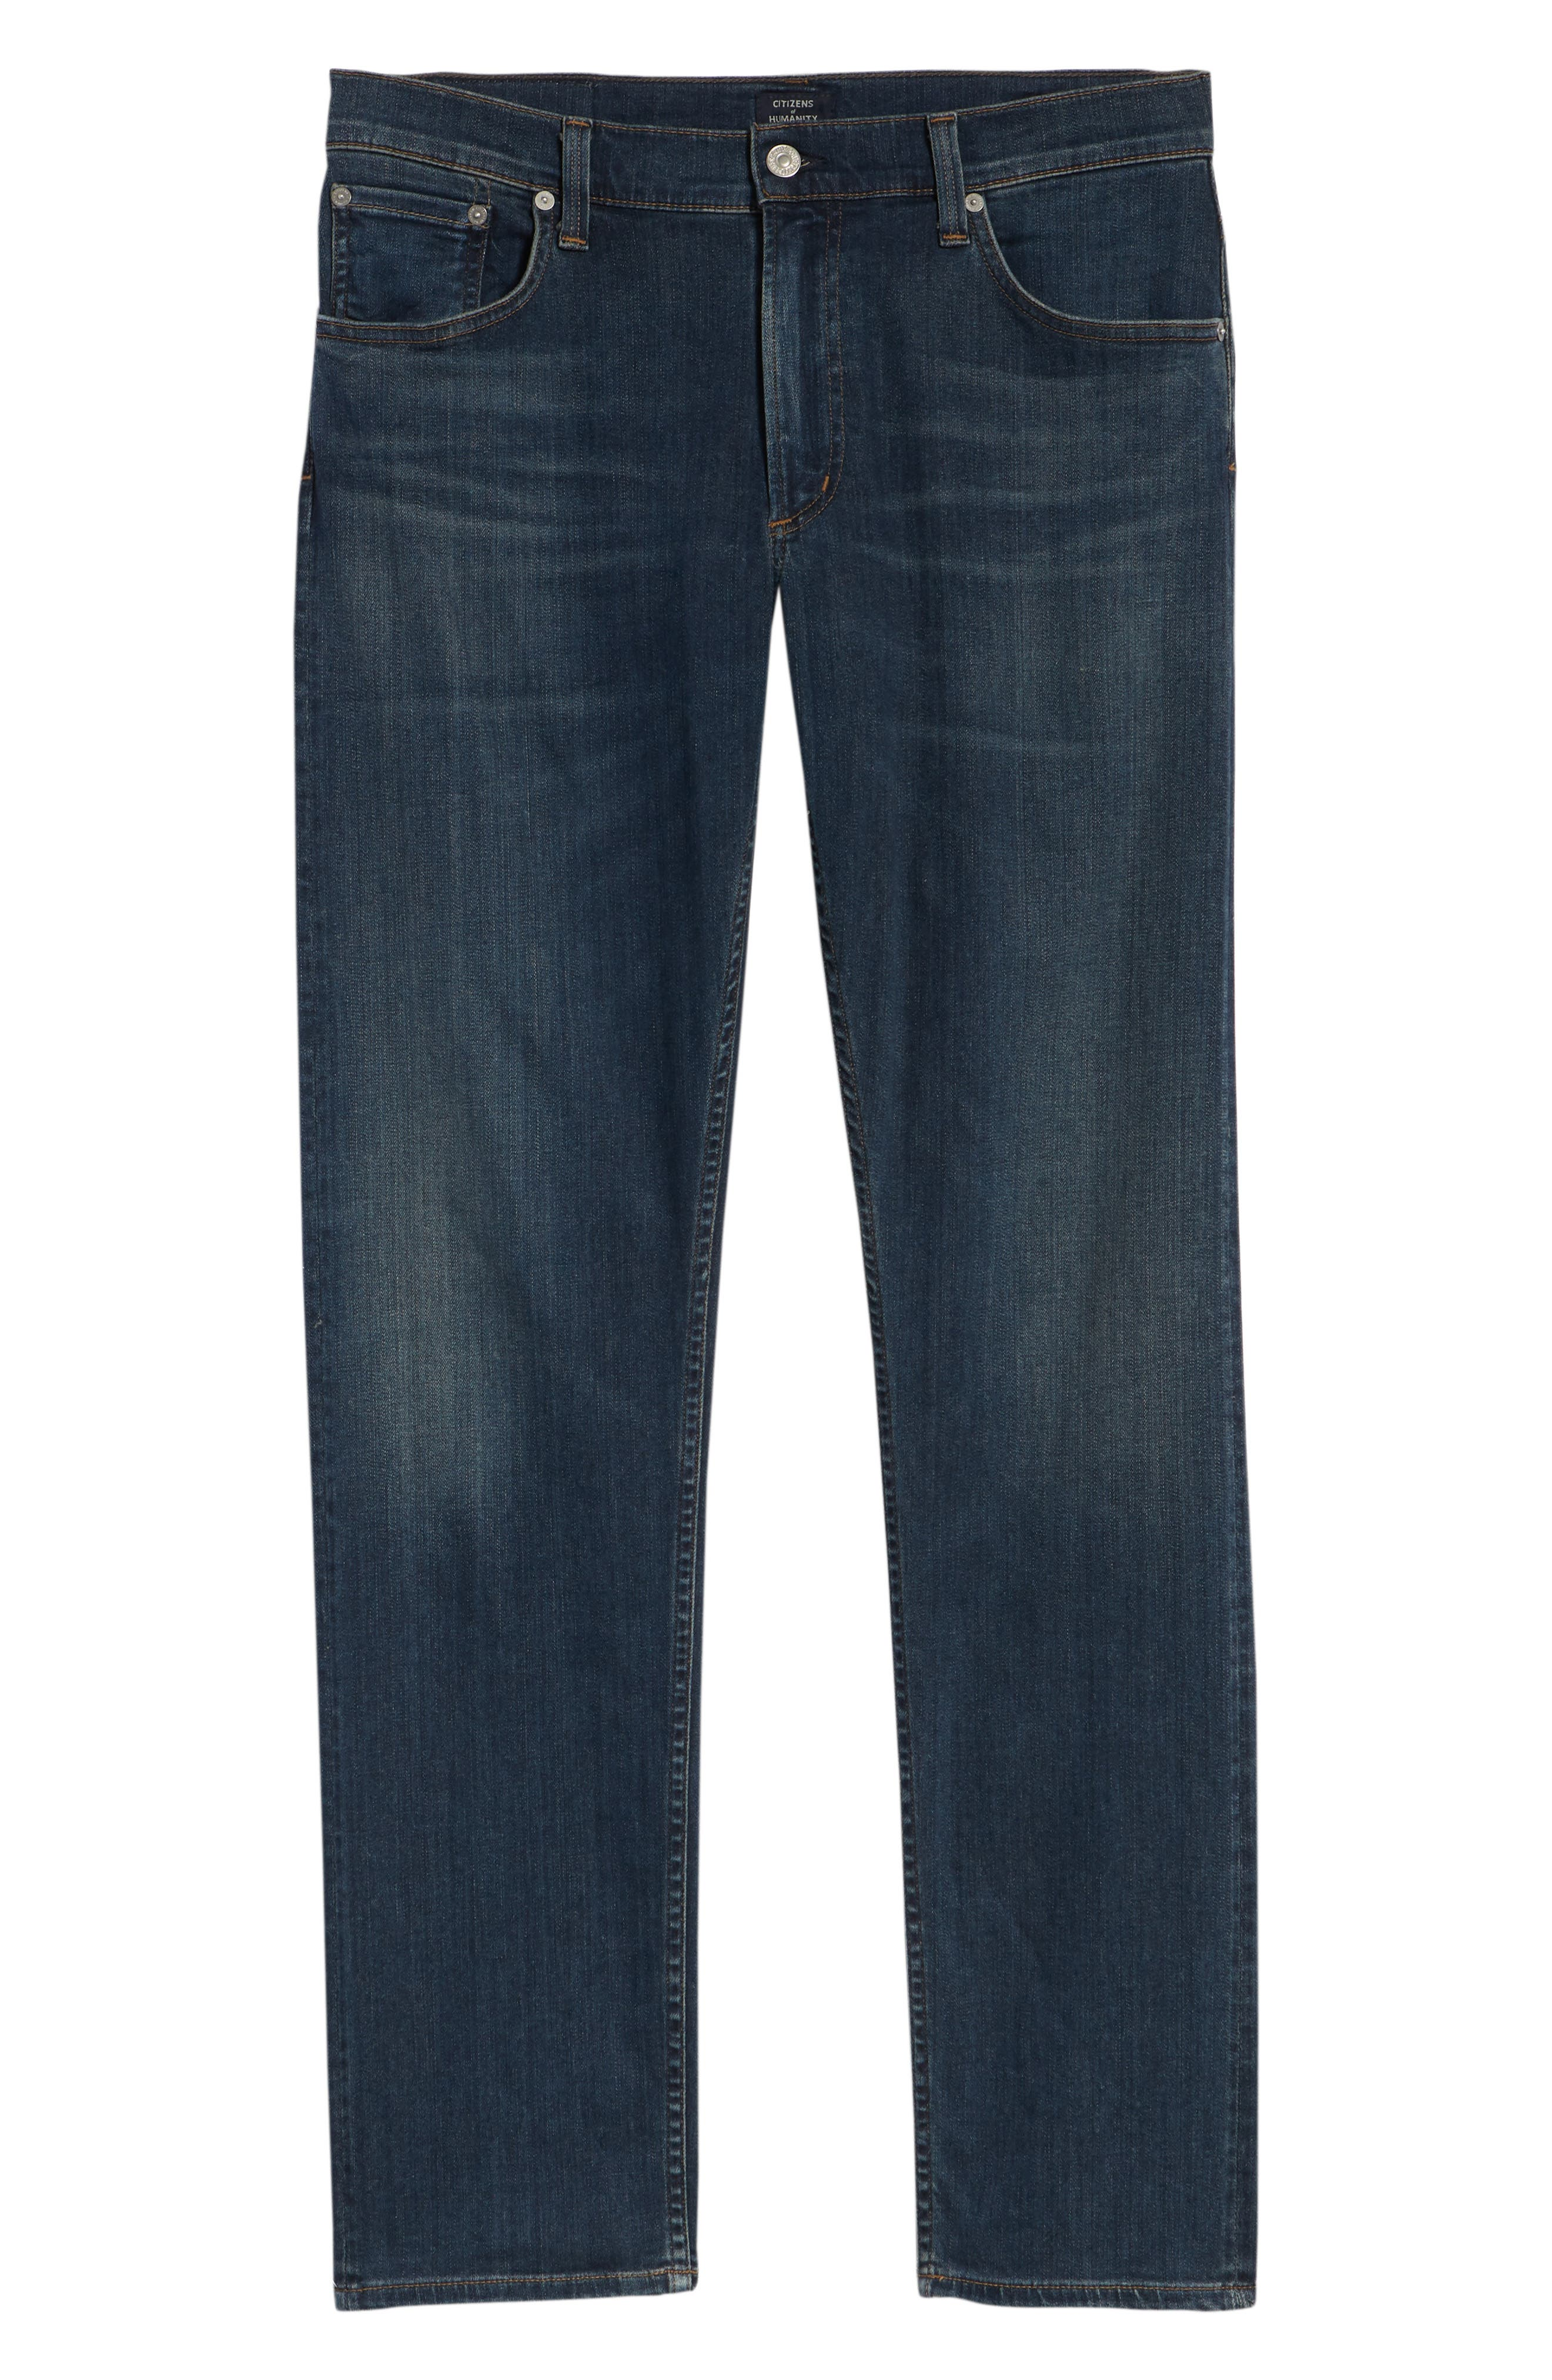 PERFORM - Bowery Slim Fit Jeans,                             Alternate thumbnail 6, color,                             424